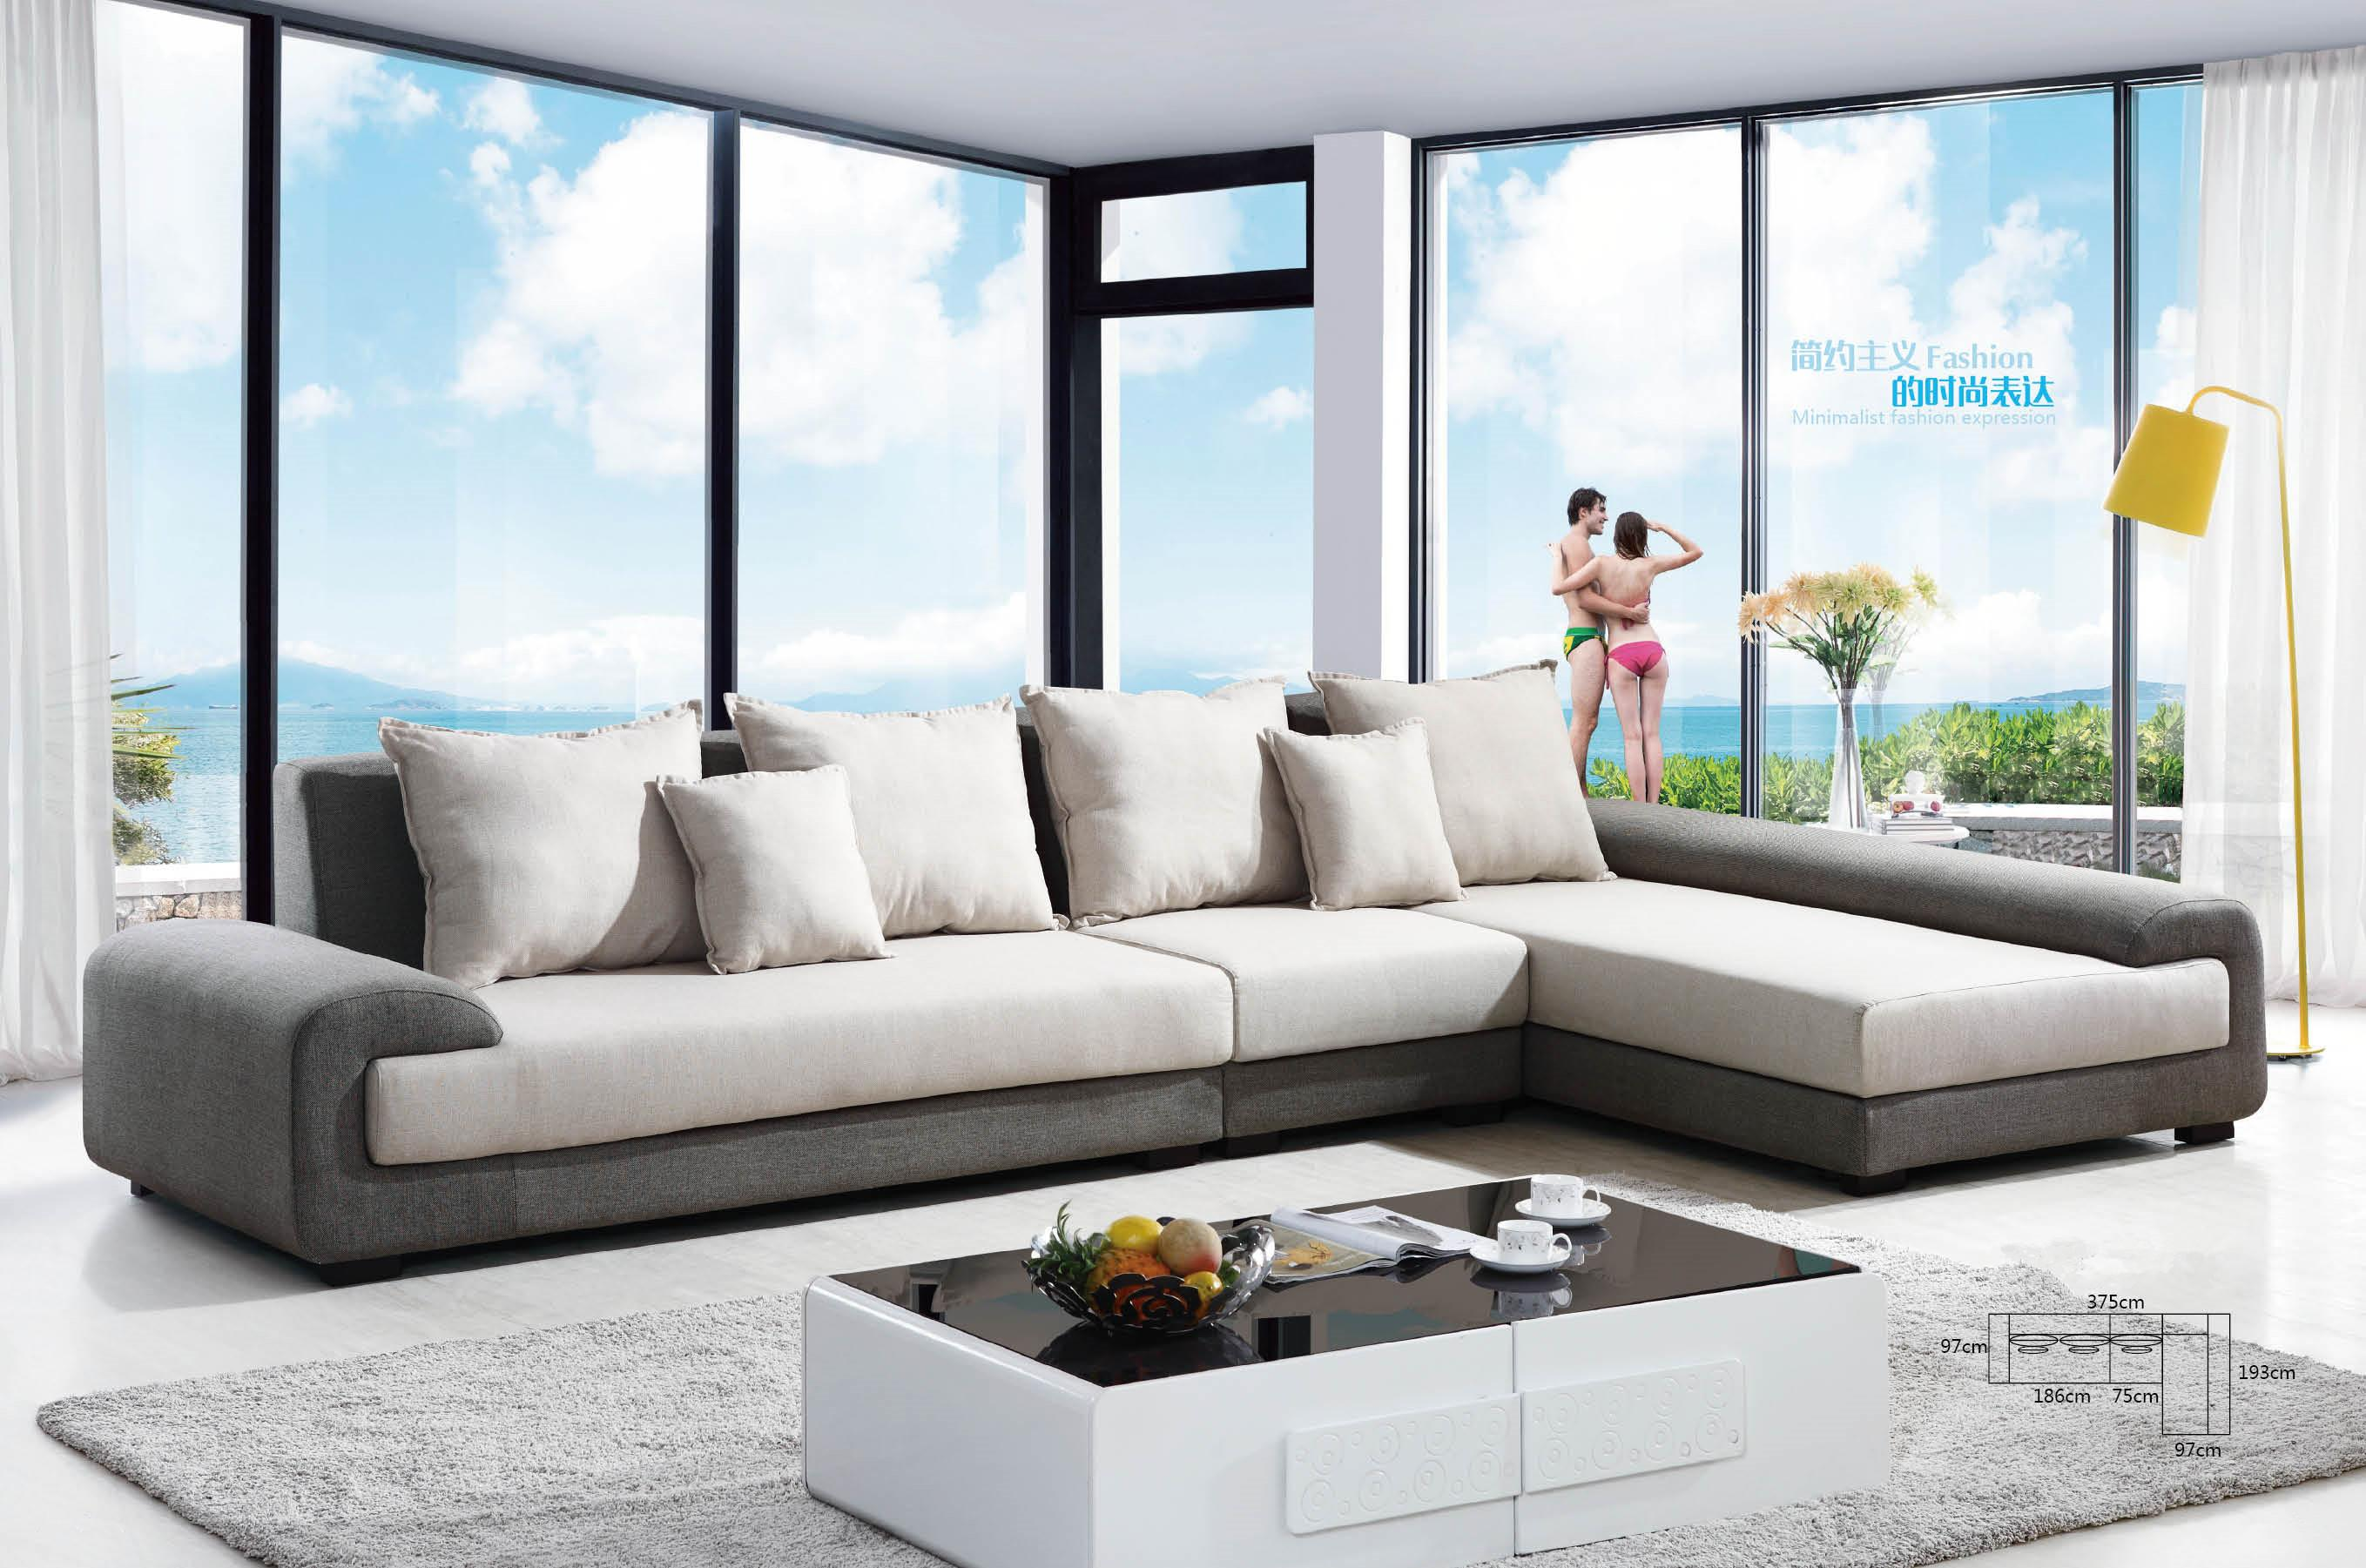 Emejing Home Sofa Set Designs Interior Design Ideas